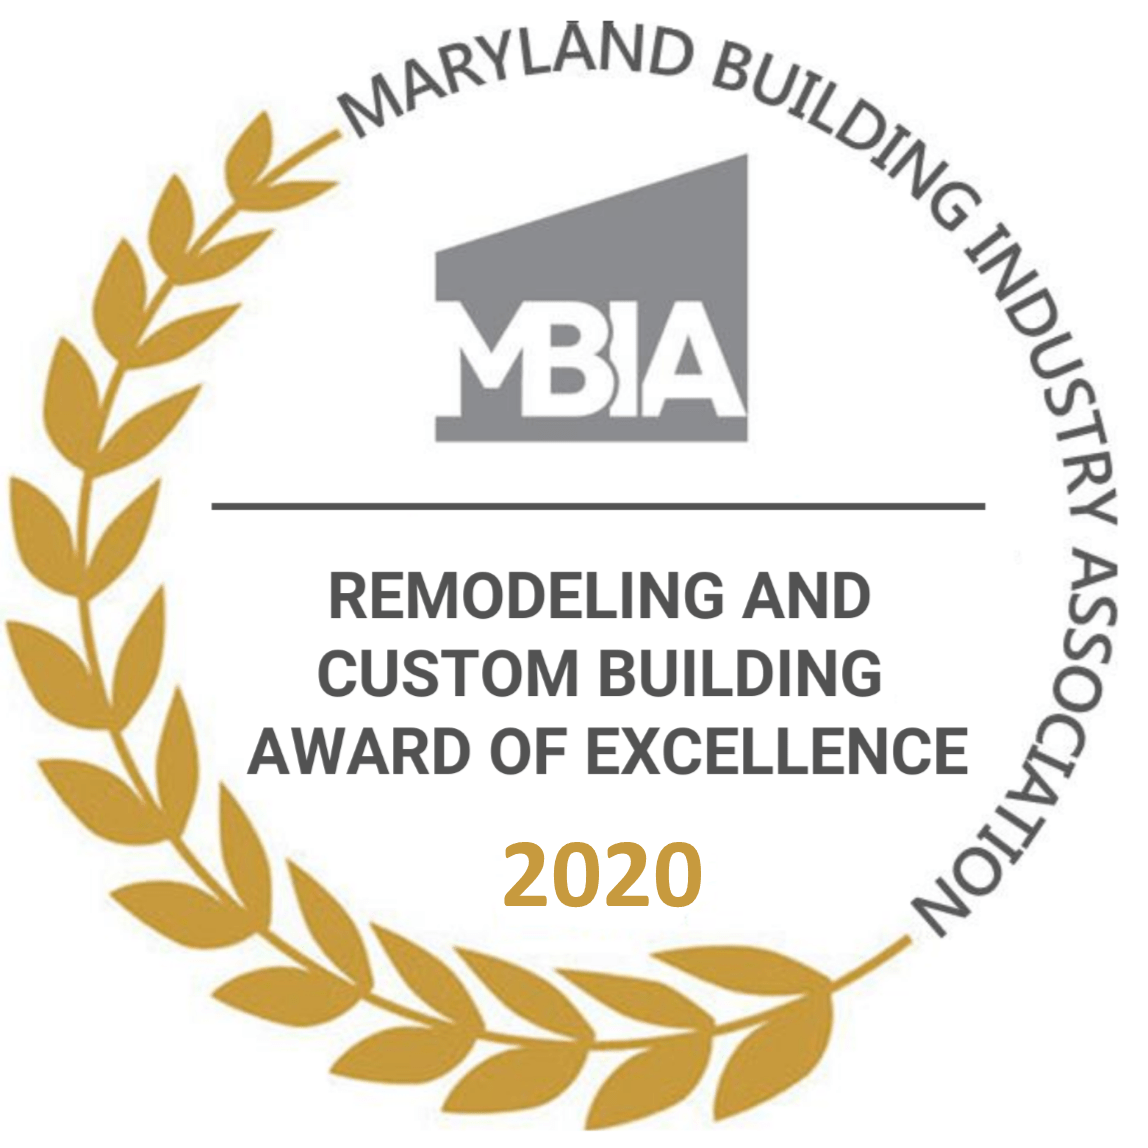 Awards of excellence 2020